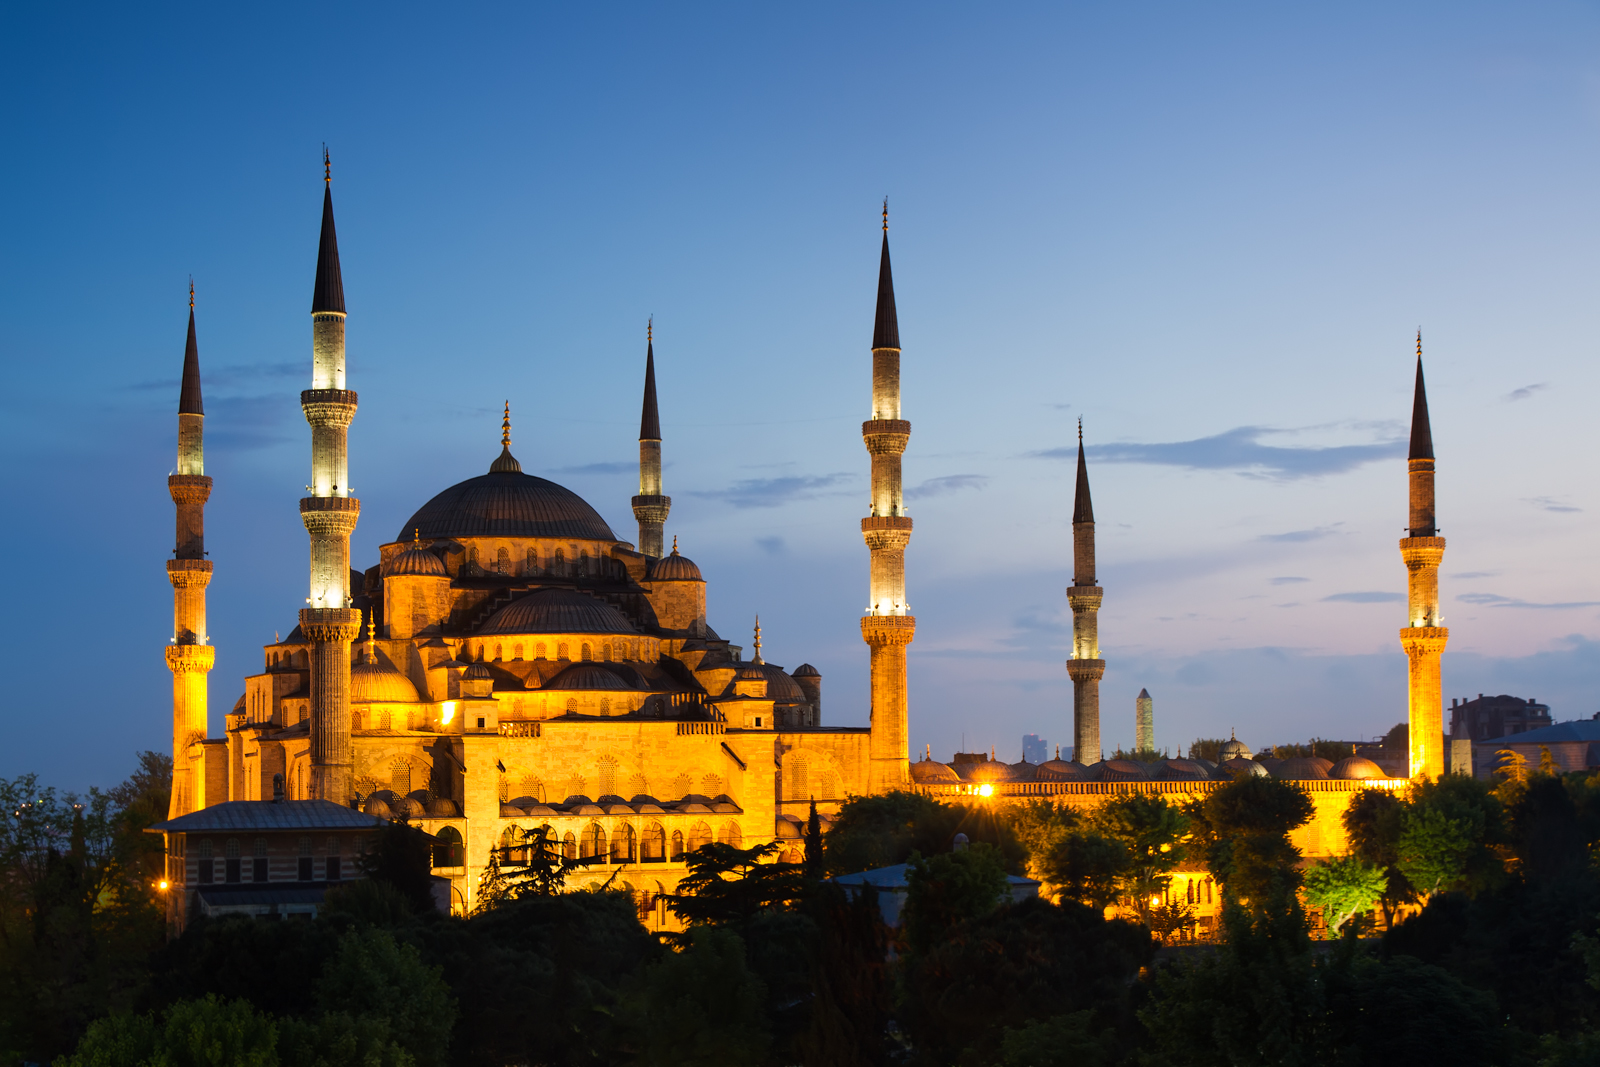 blue mosque mosque in istanbul thousand wonders. Black Bedroom Furniture Sets. Home Design Ideas